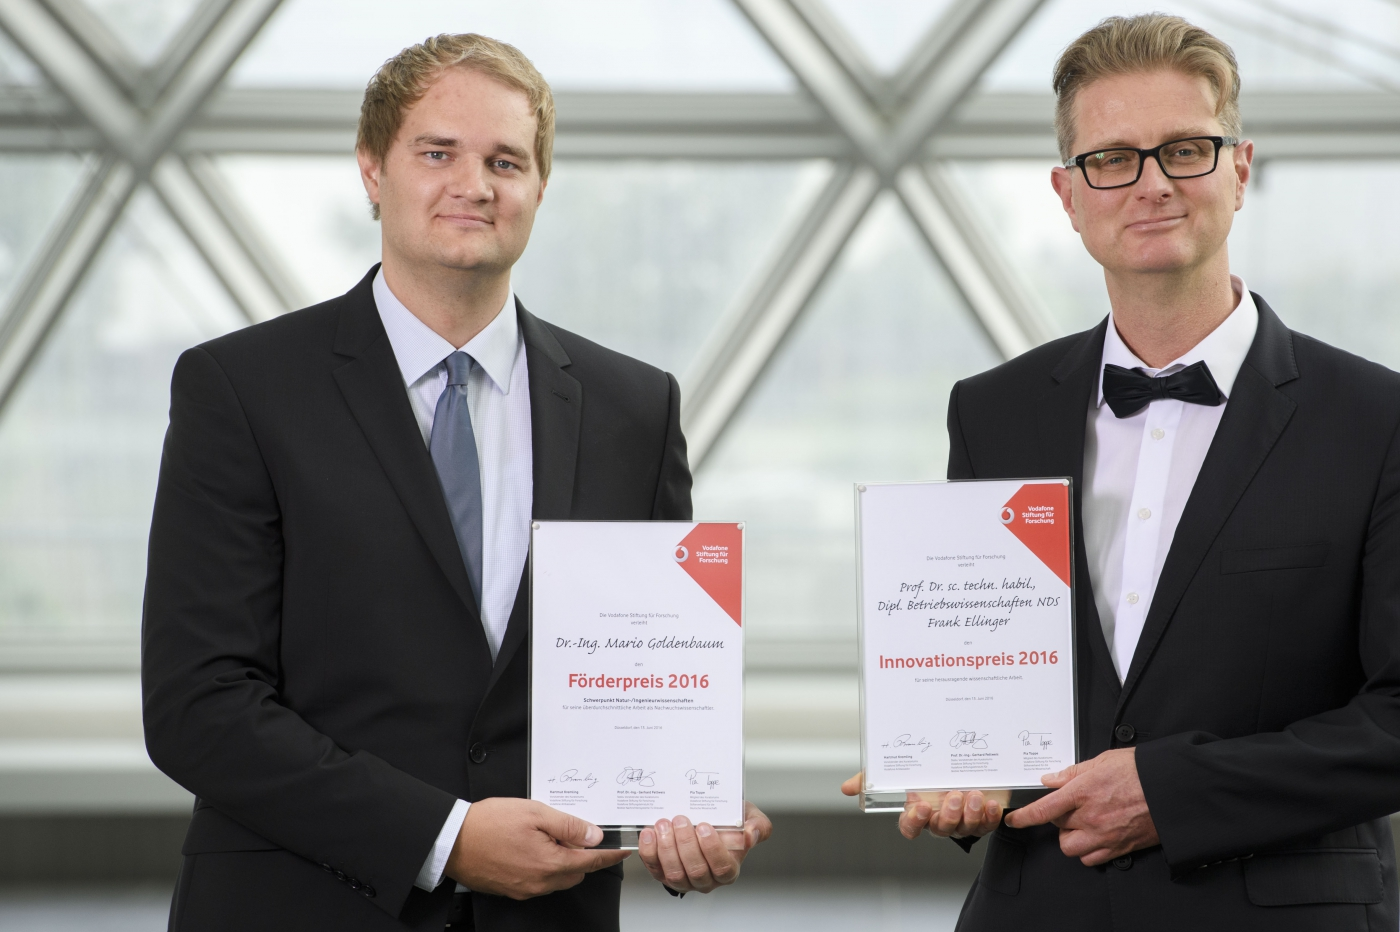 Vodafone Awards go to Frank Ellinger and Mario Goldenbaum